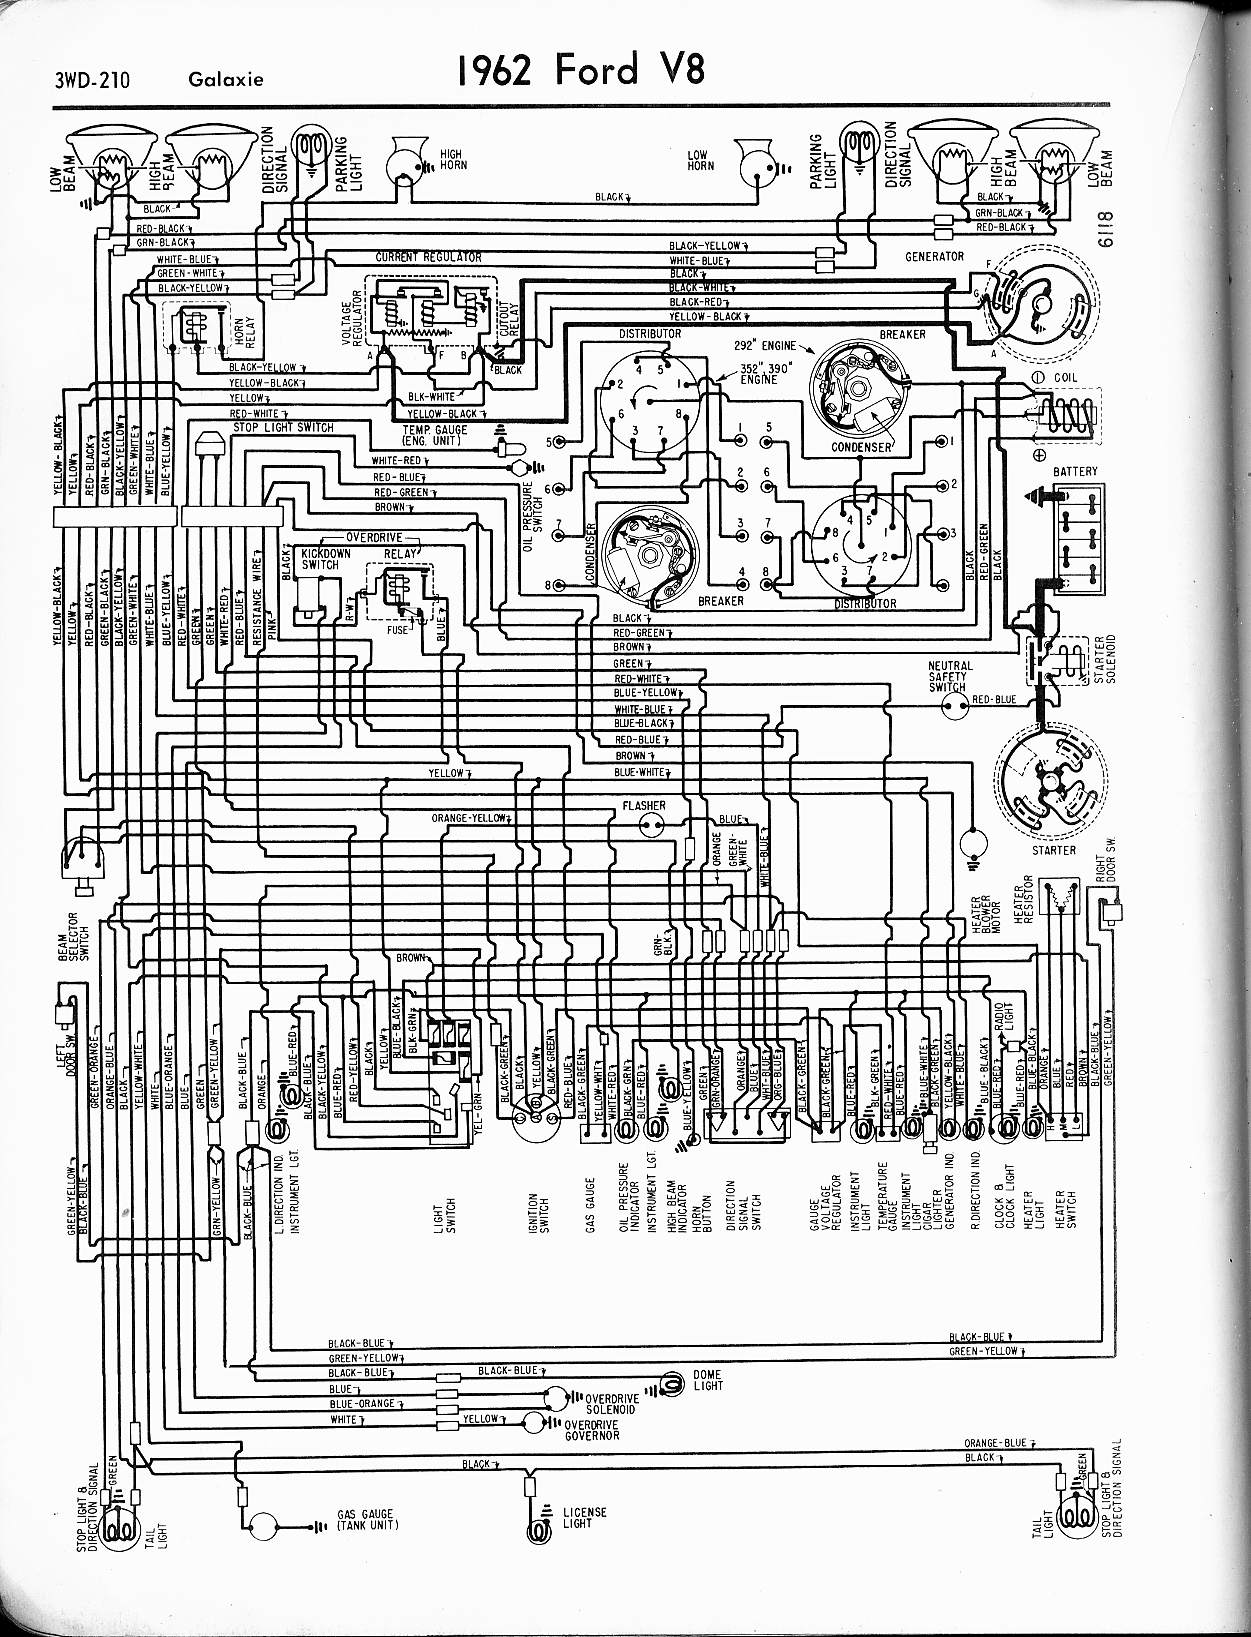 1997 Ford F150 Wiring Diagram Archives Automotive Wiring Diagrams